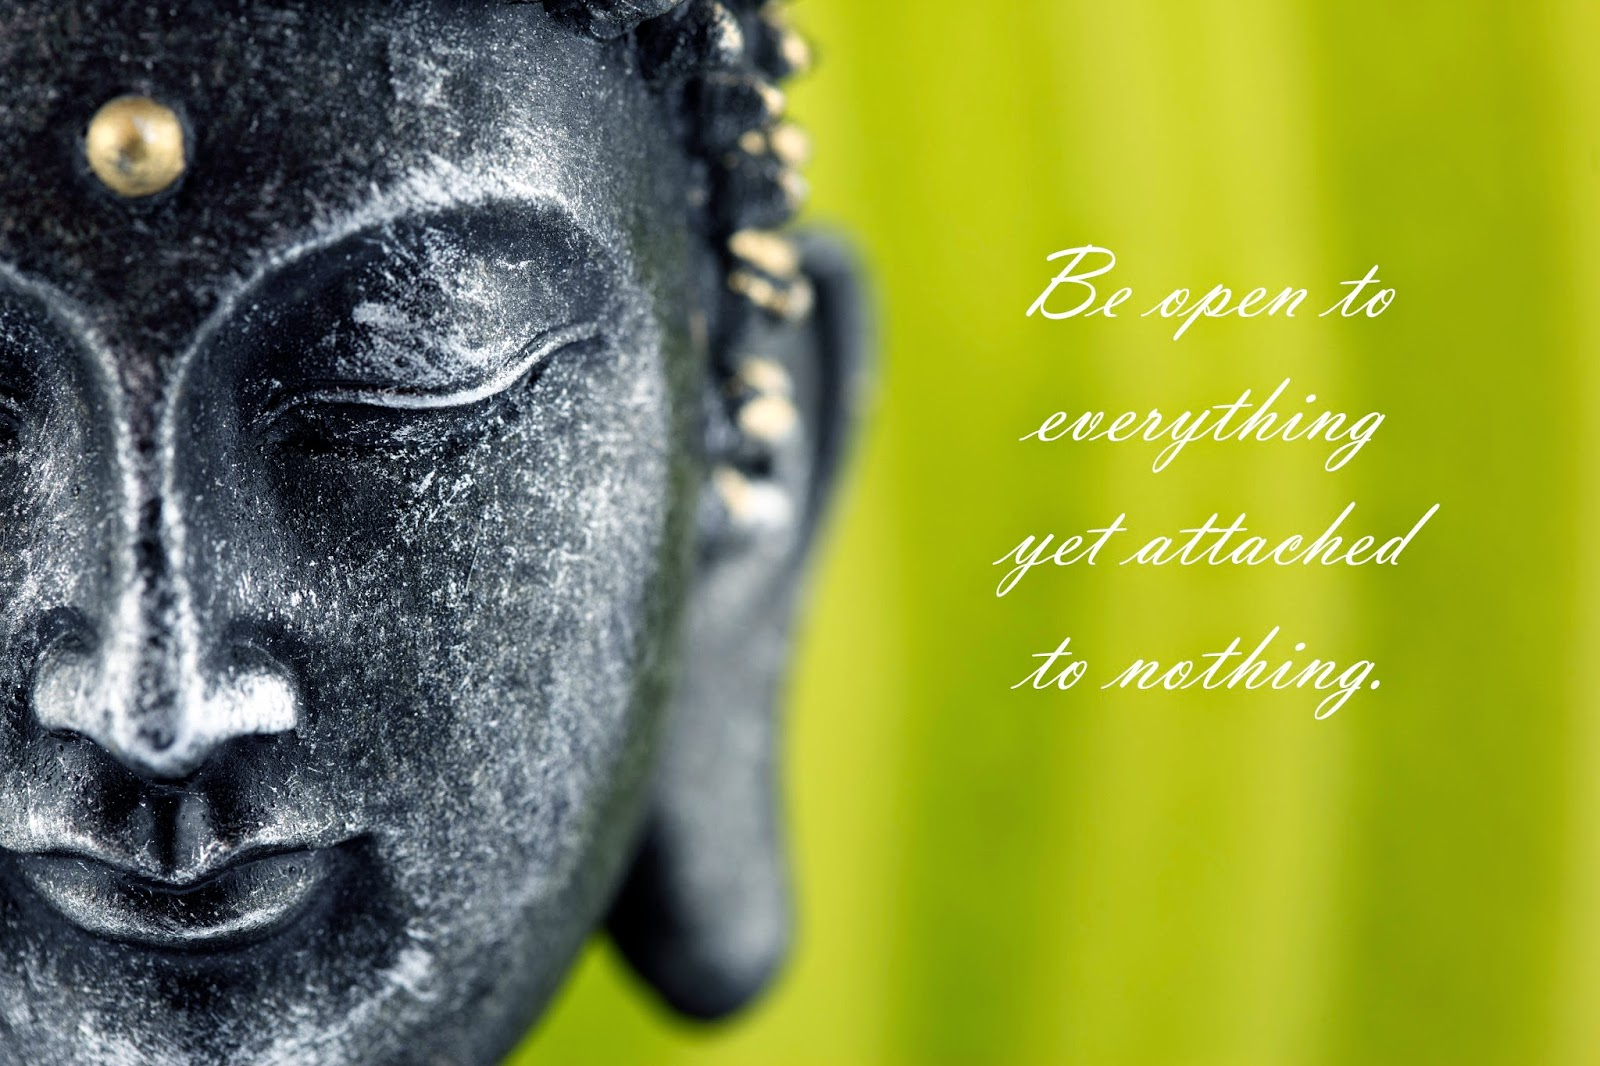 new-latest-buddha-best-quotes-wallpaper-3866x2577-for-desktop-mobile.jpg